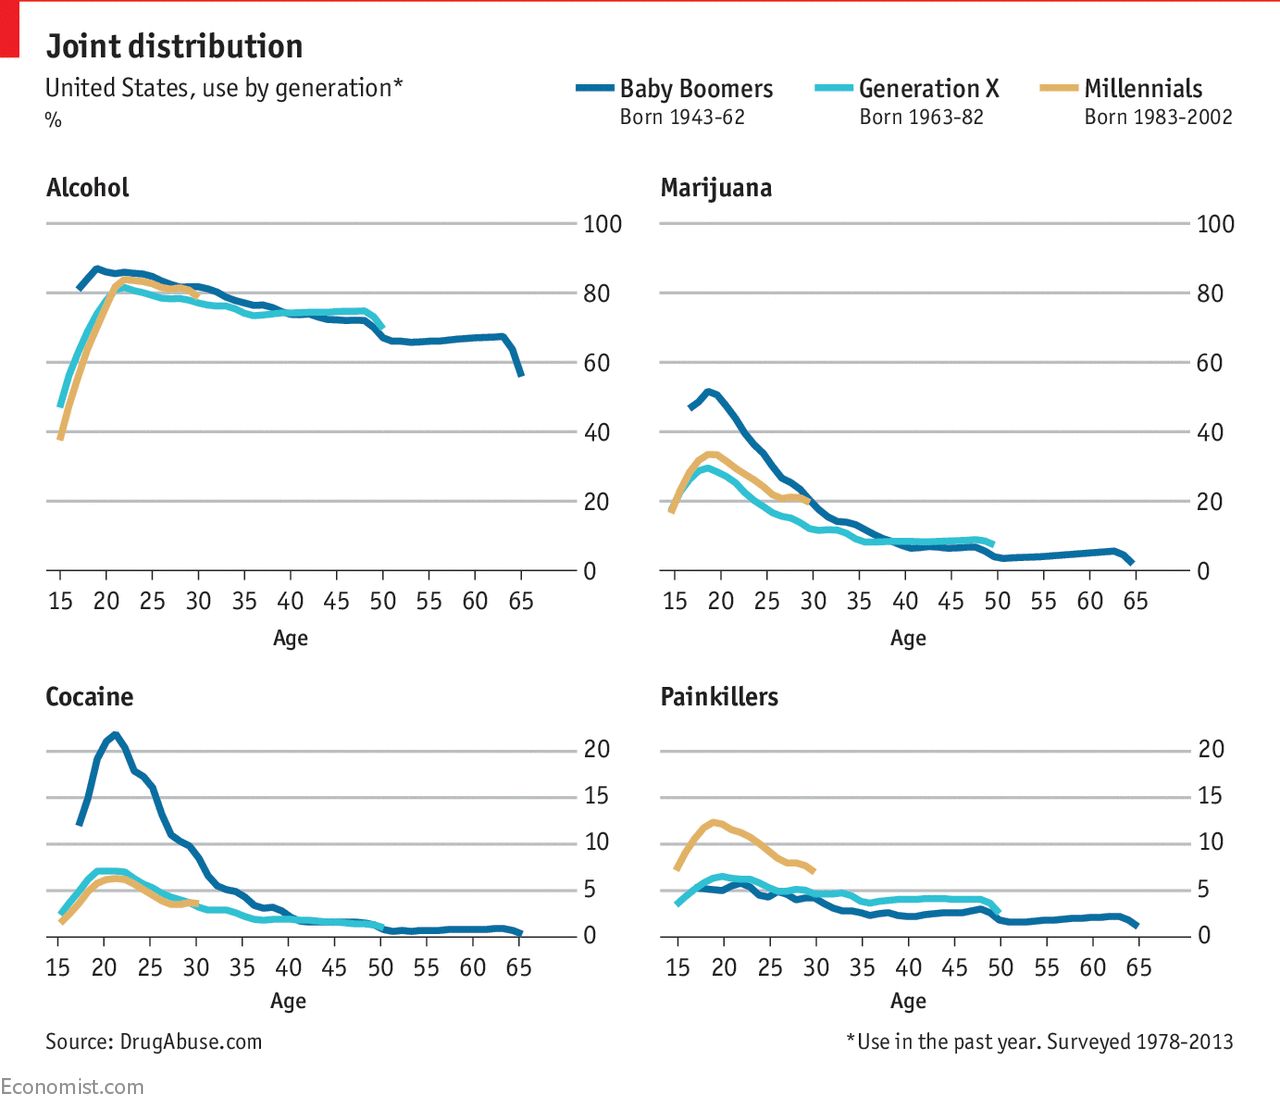 Millennials are less keen than previous generations on illicit drugs